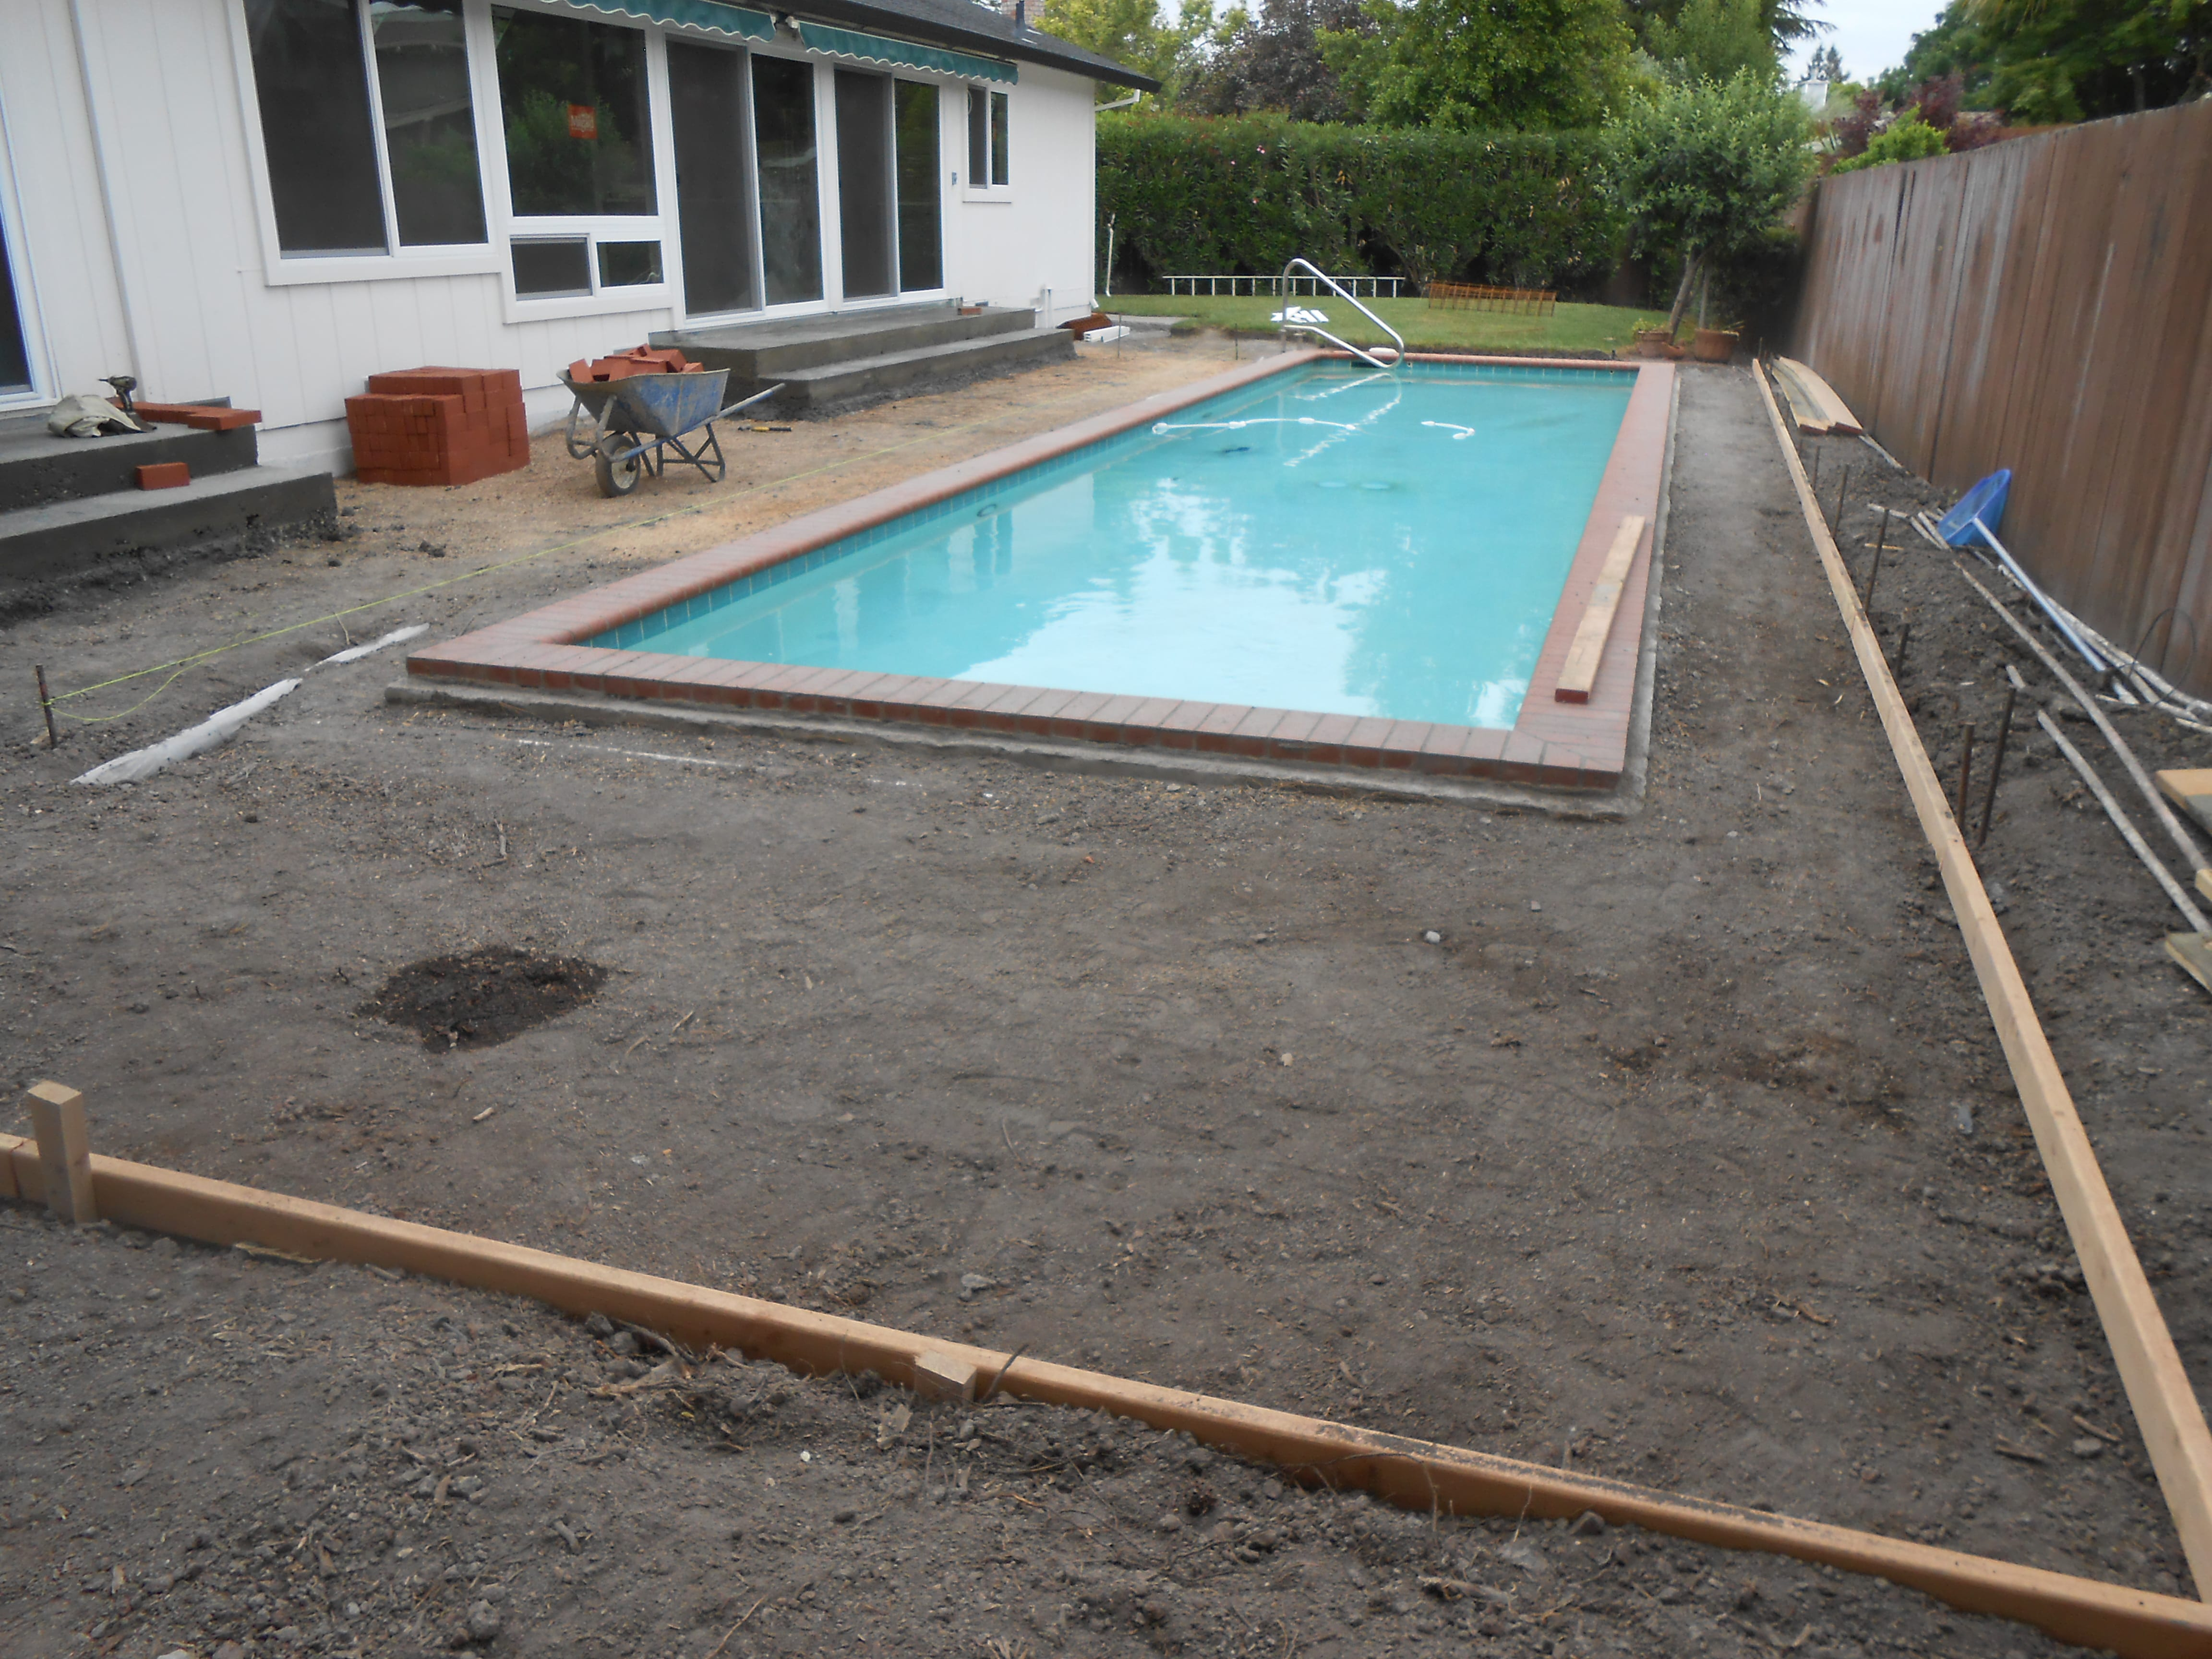 Preparing the area for brick installation in a pool deck